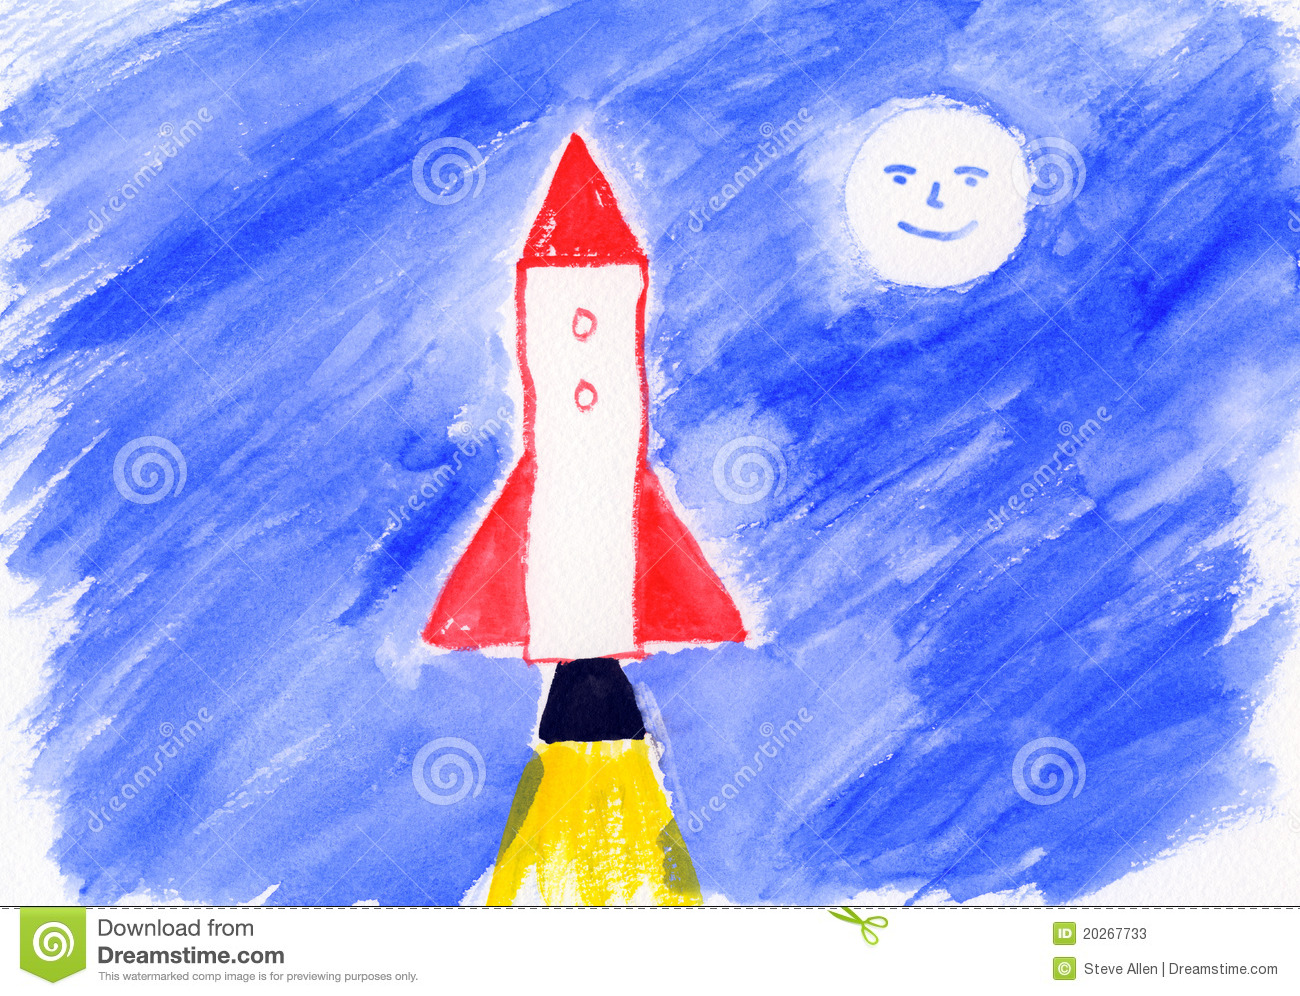 Childrens Painting - Rocket - Artwork Stock Photos - Image: 20267733